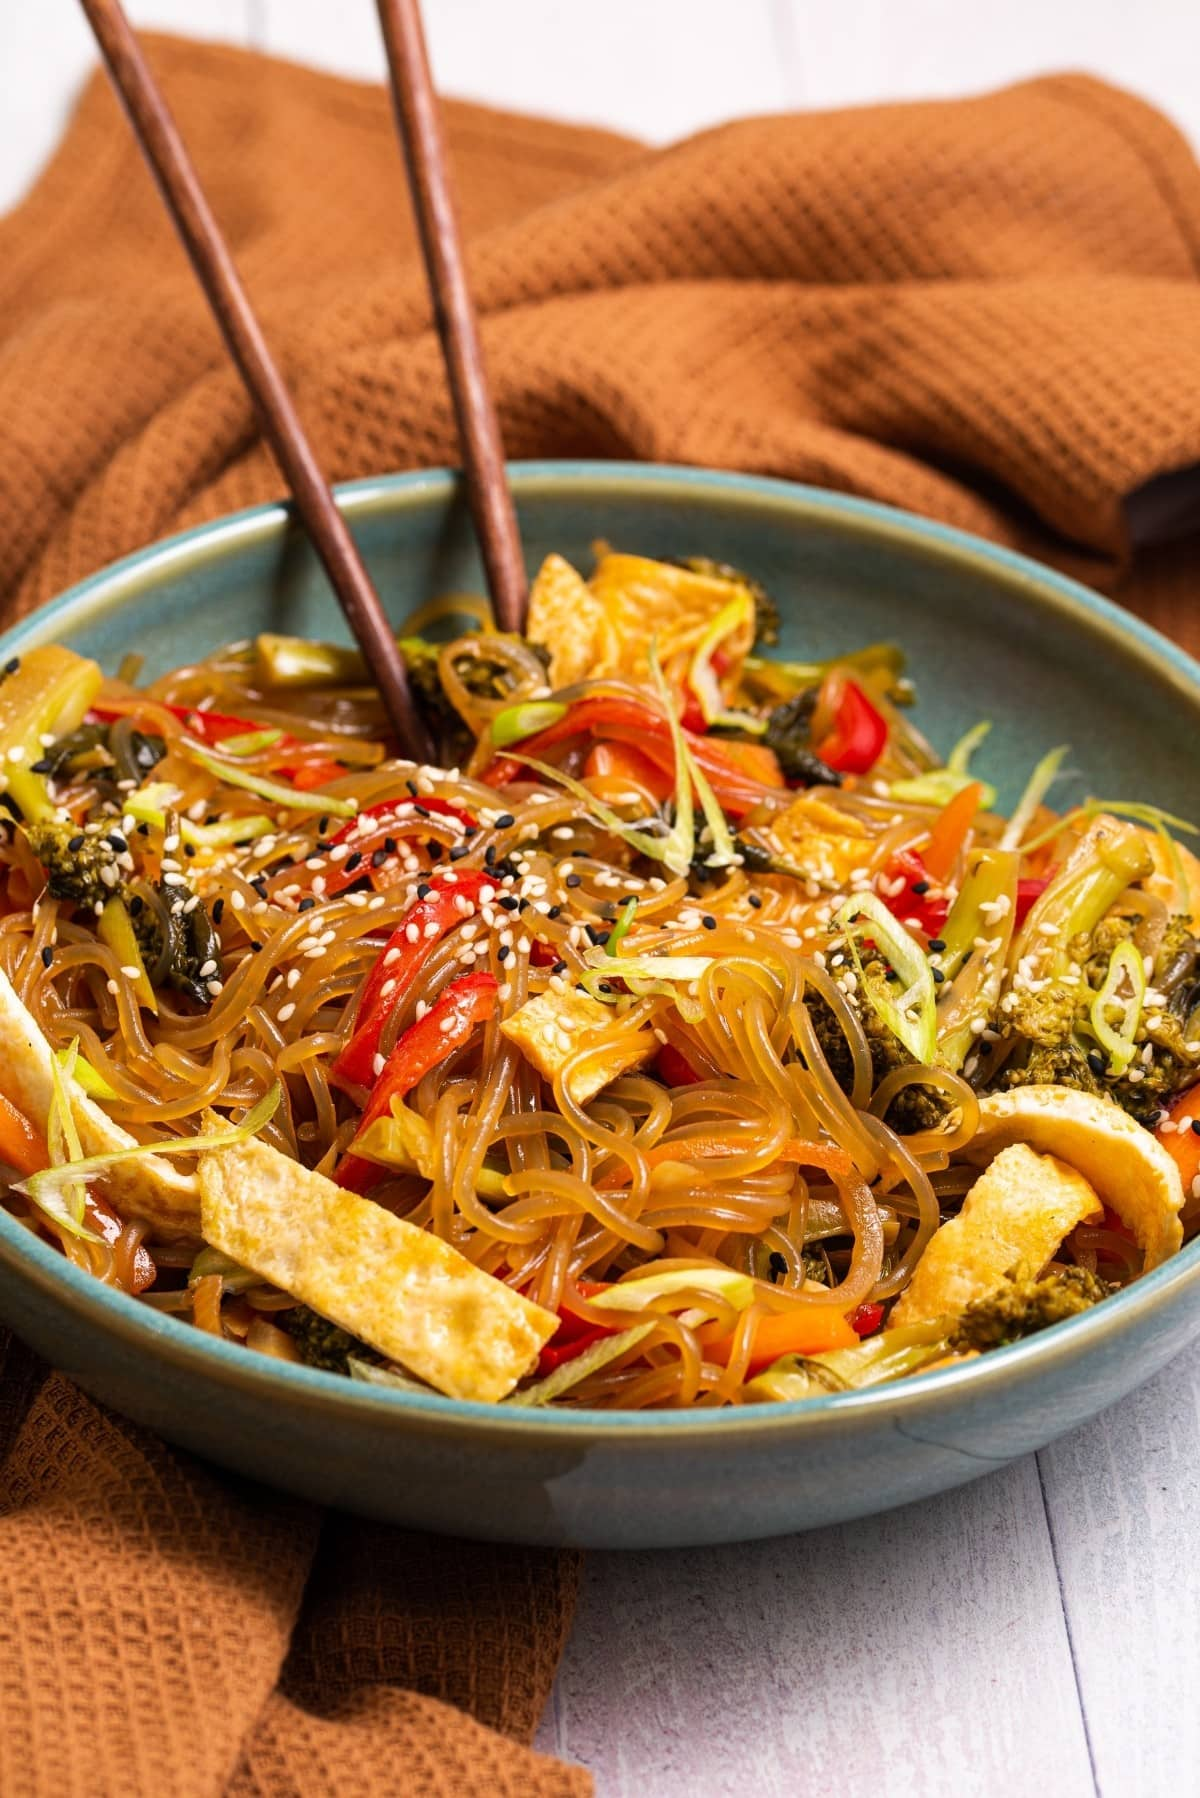 Vegetarian, paleo, and gluten free sweet potato glass noodles and vegetables.